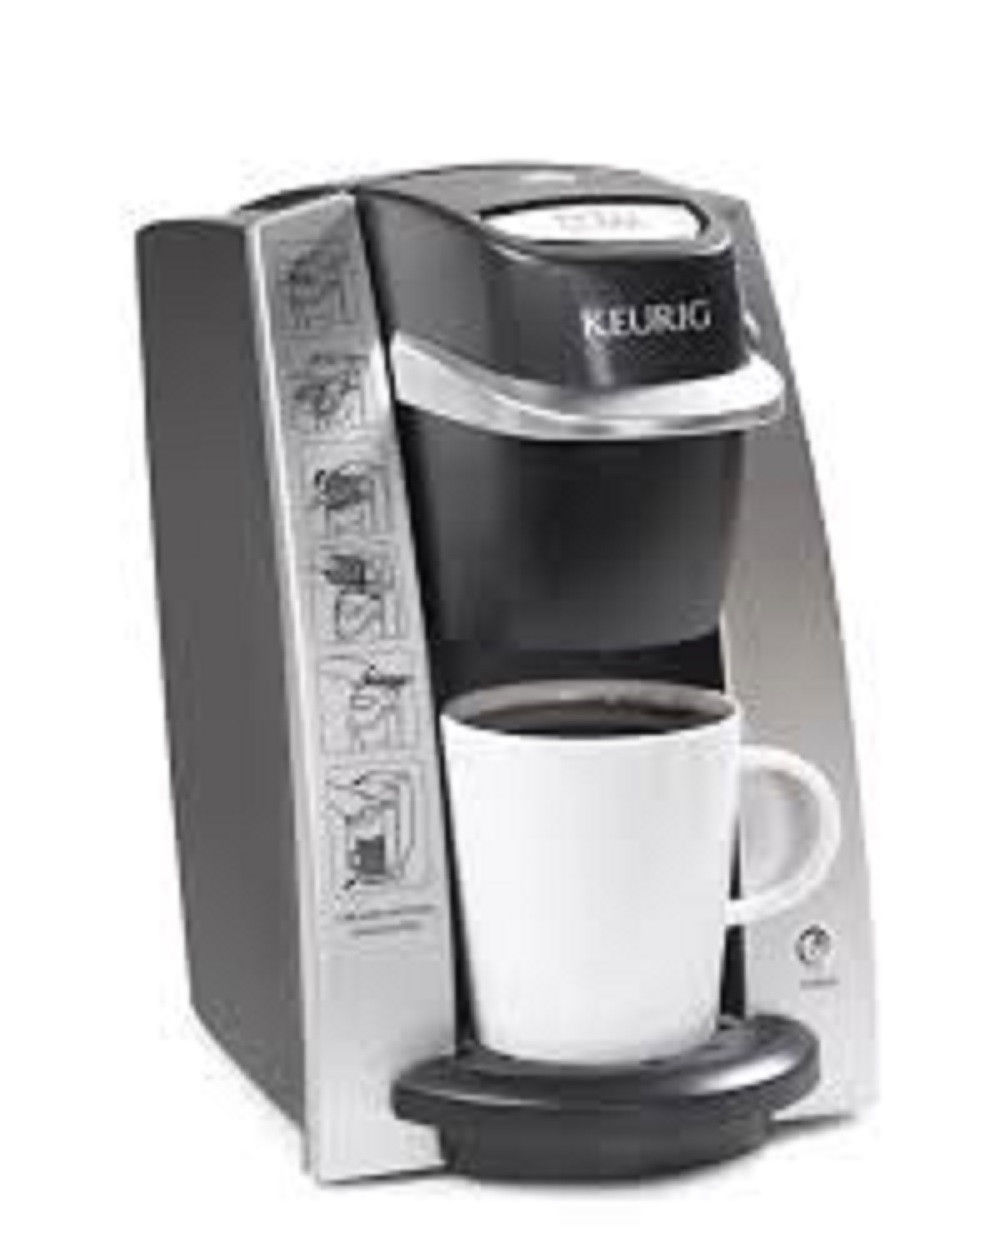 Dimensions Of Coffee Maker : Coffee Maker Tea Hot Chocolate Brew Size Favorite Enjoyment Keurig DeskPro - Single Serve Brewers